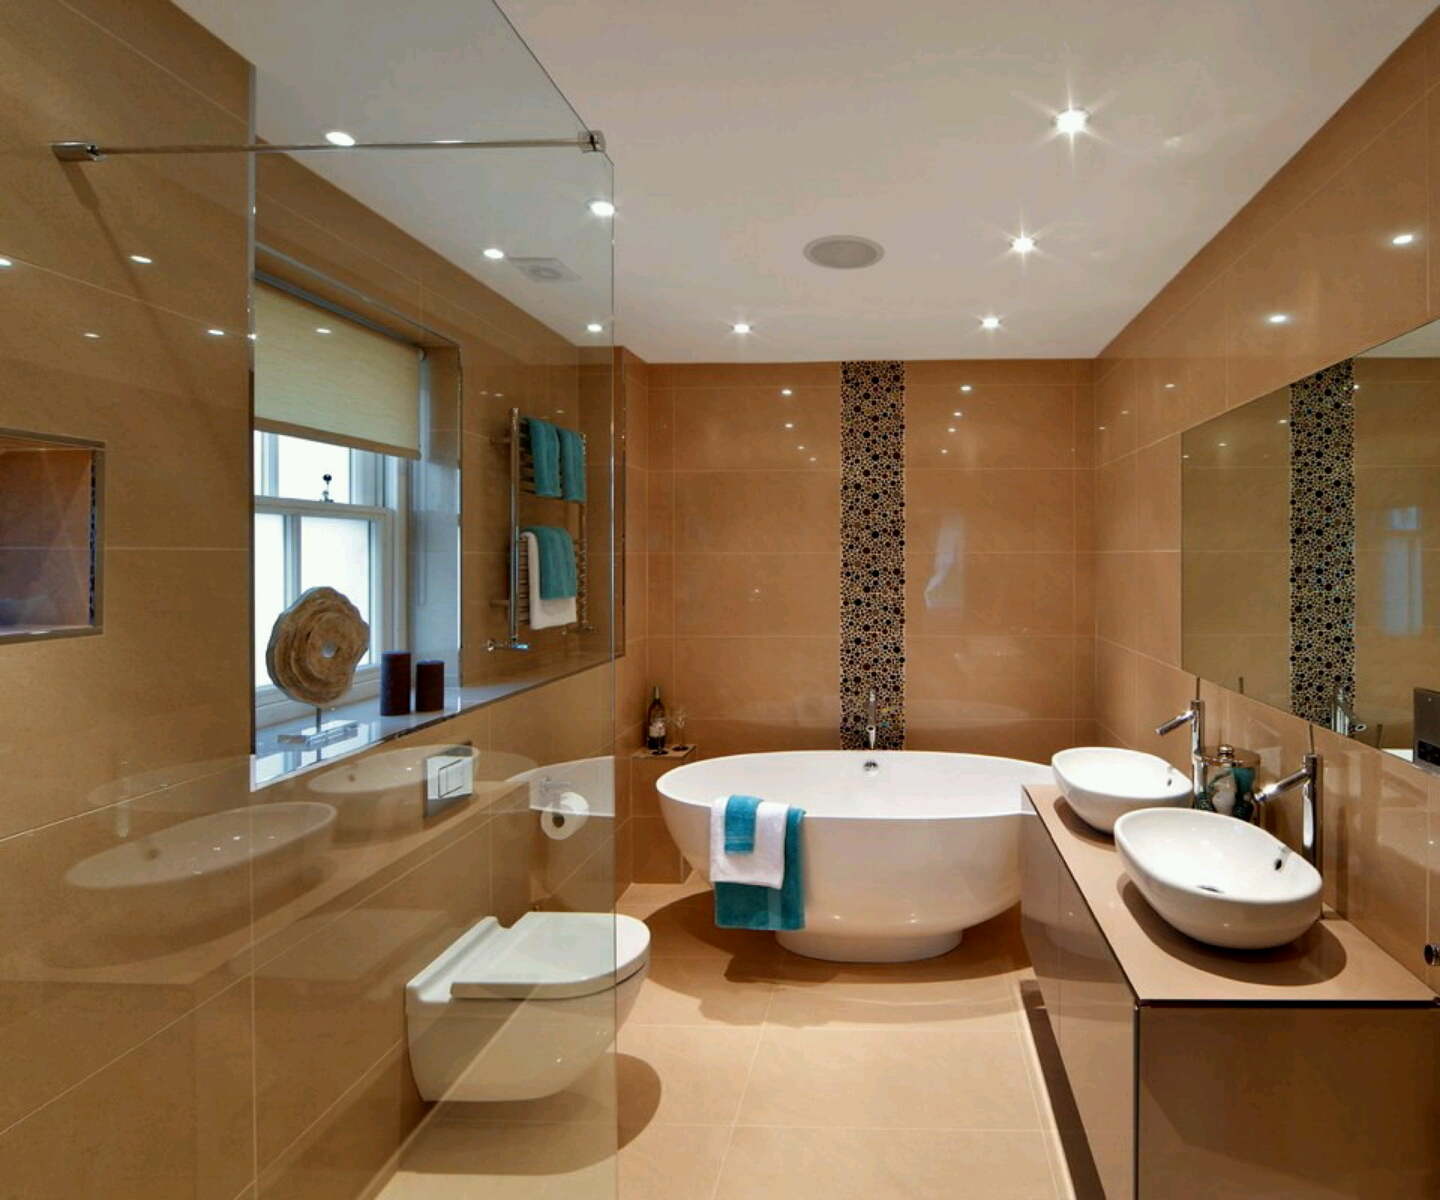 25 small but luxury bathroom design ideas Bathroom design for condominium